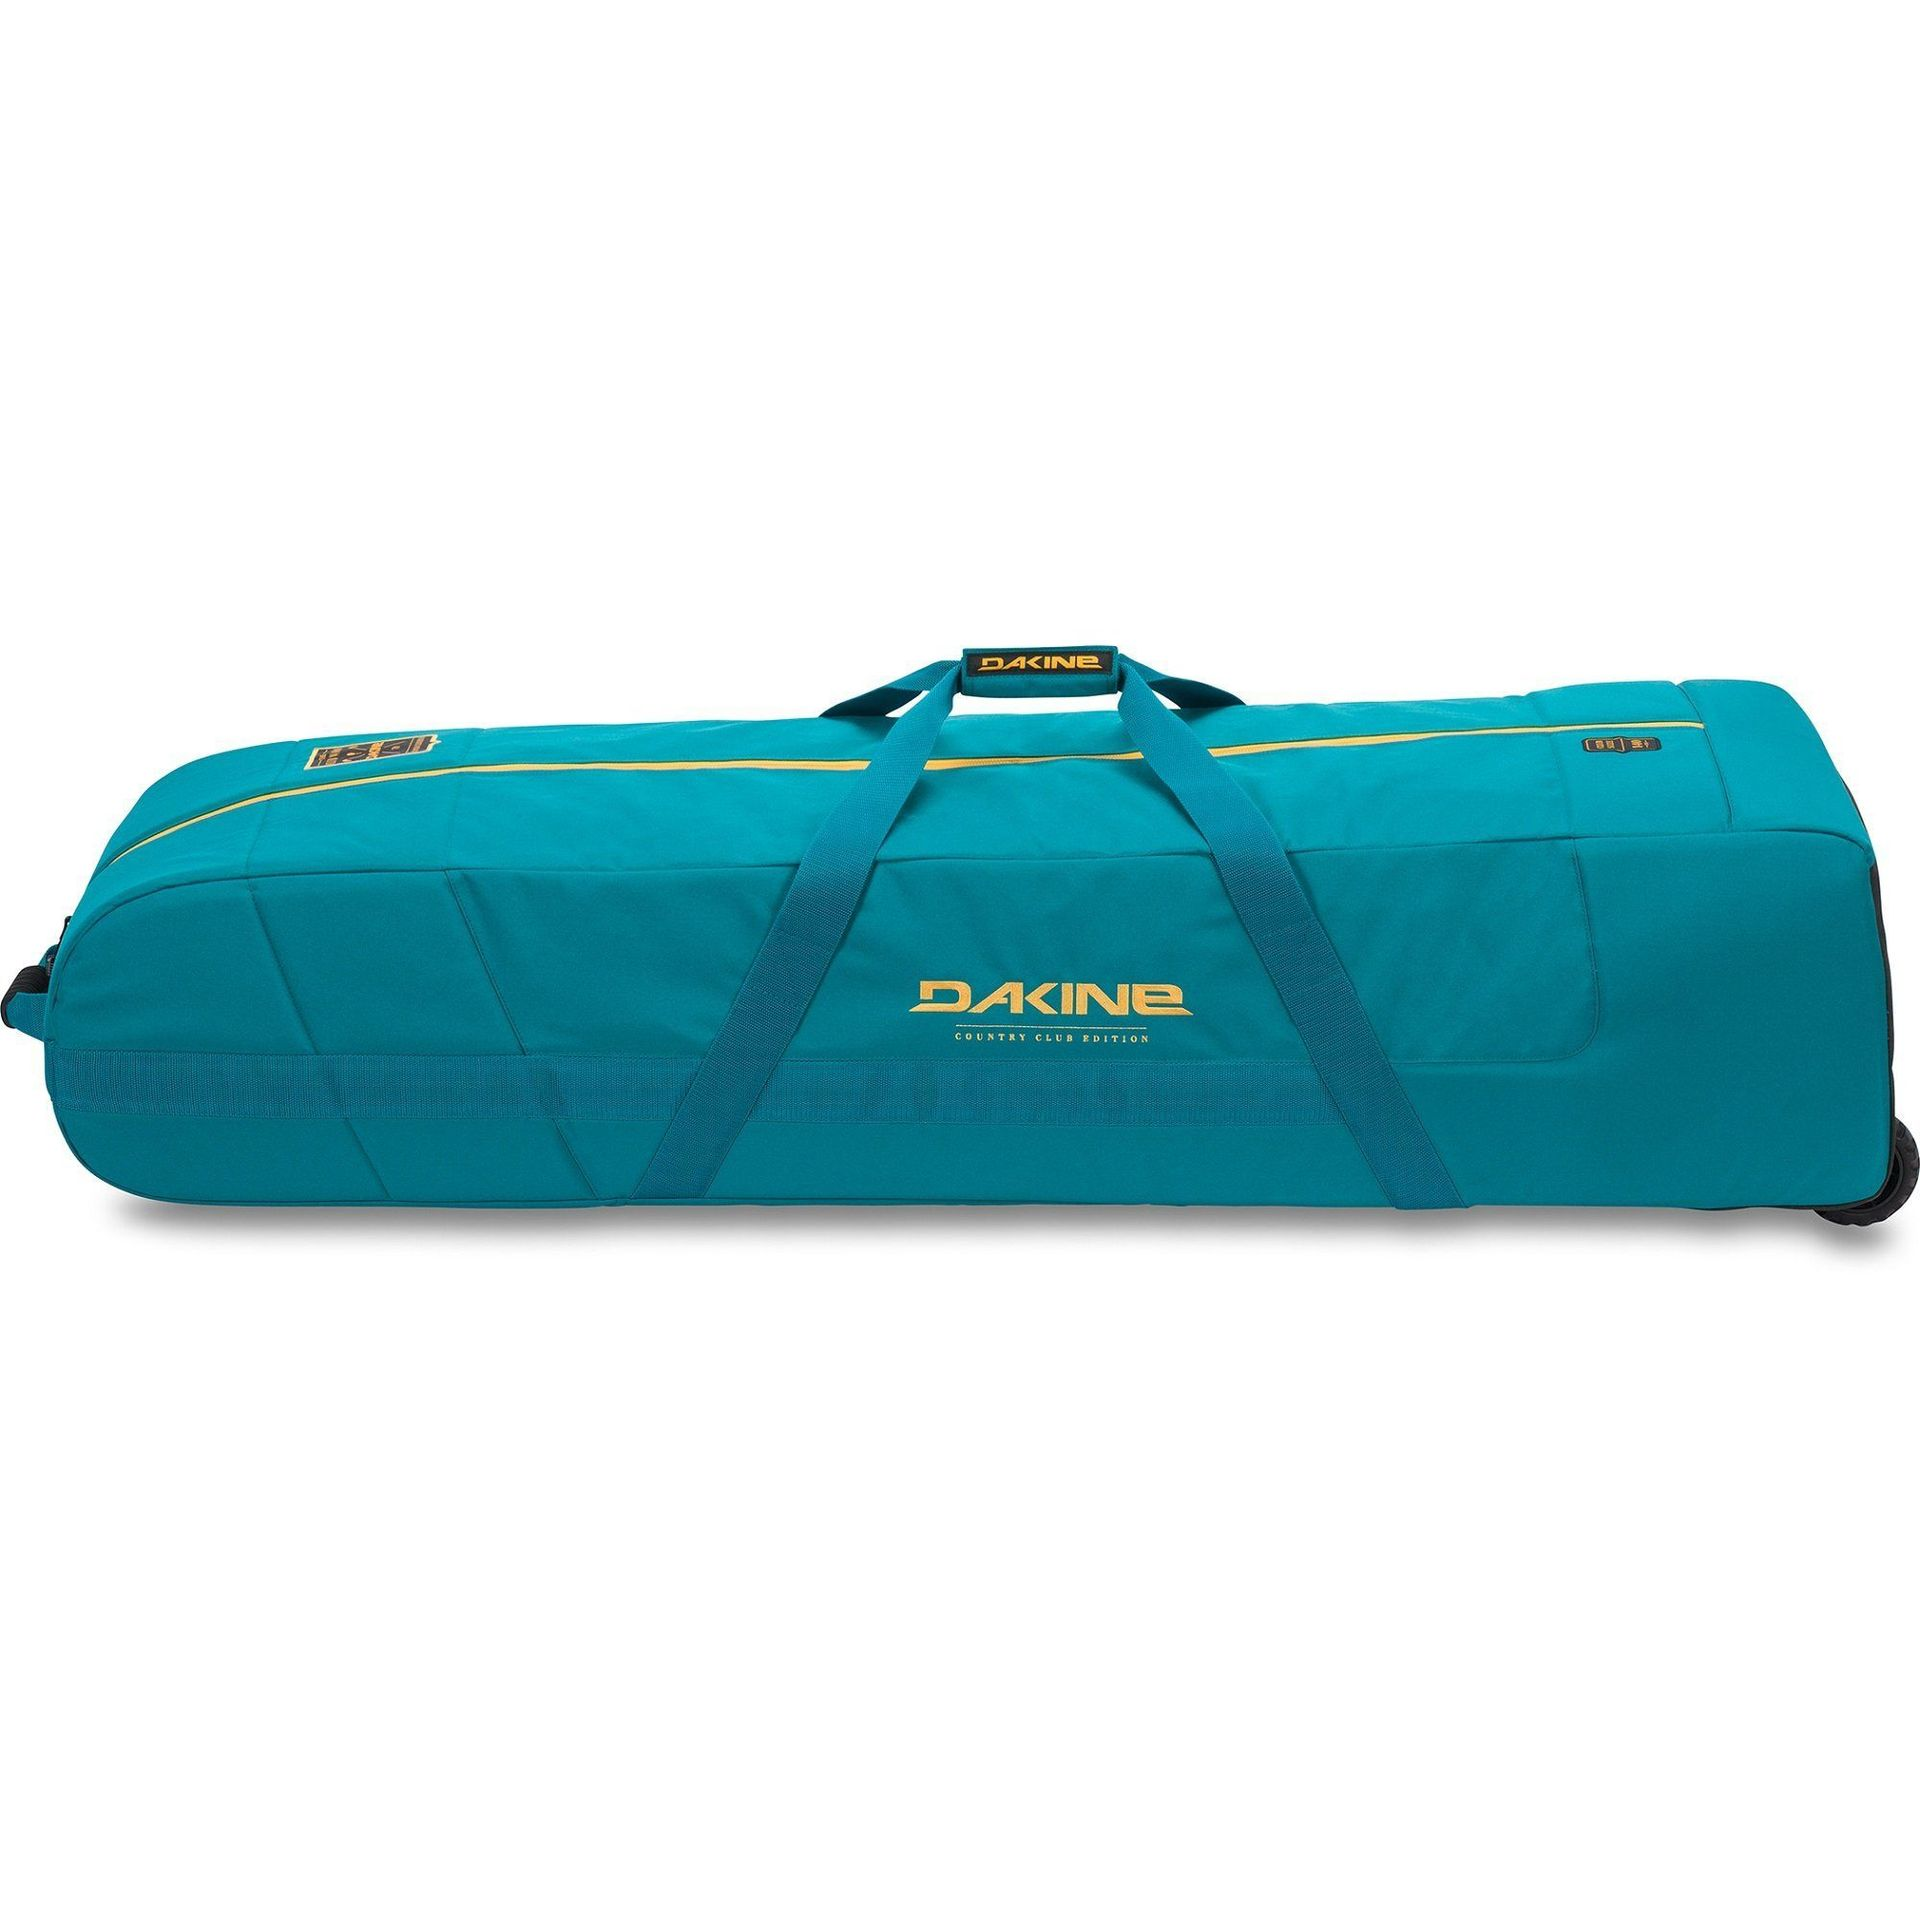 TORBA DAKINE CLUB WAGON SEAFORD